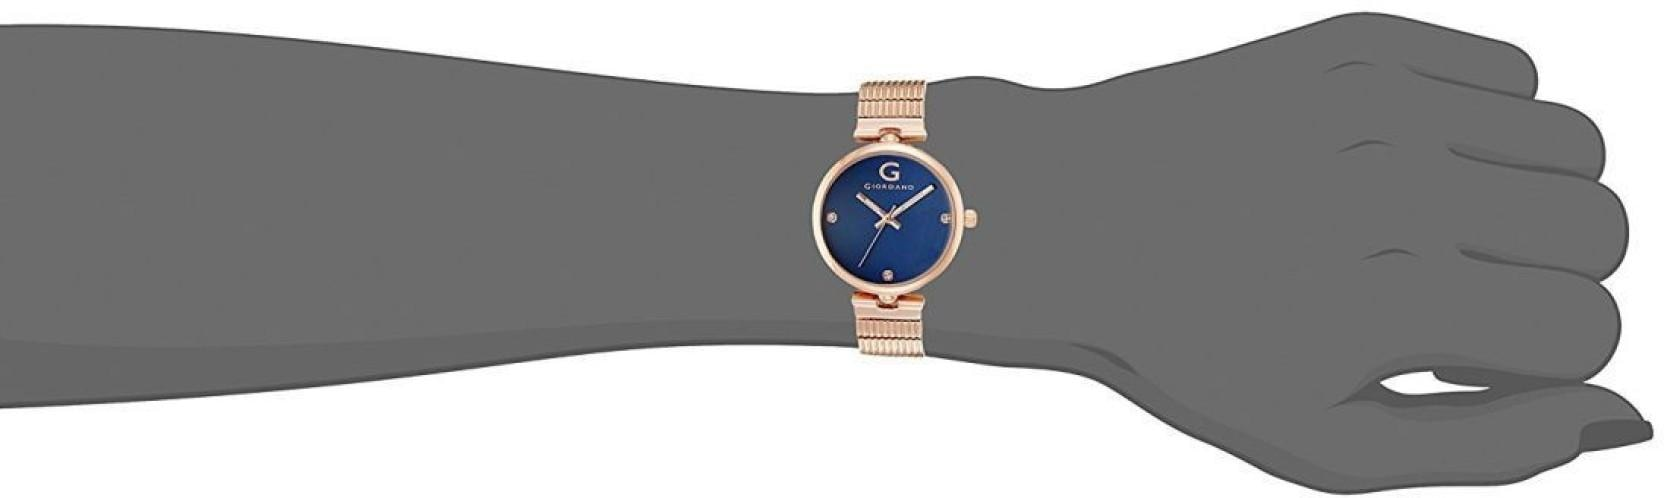 Cross A2058-55 Watch - For Women